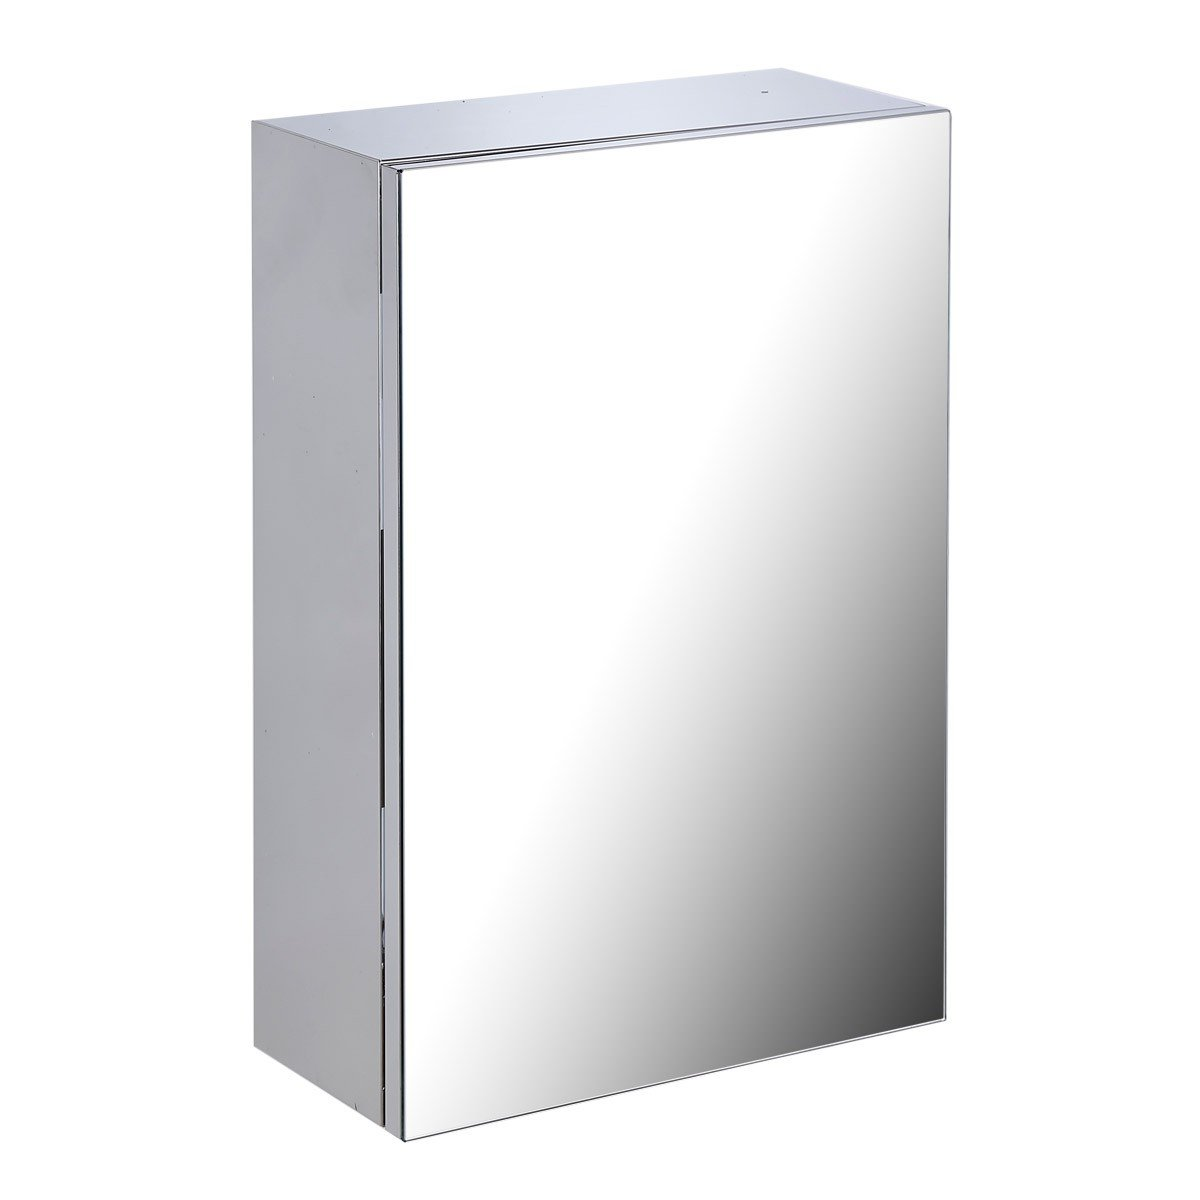 22'' Stainless Steel Medicine Cabinet Mirror Wall Mount | Renovator's Supply